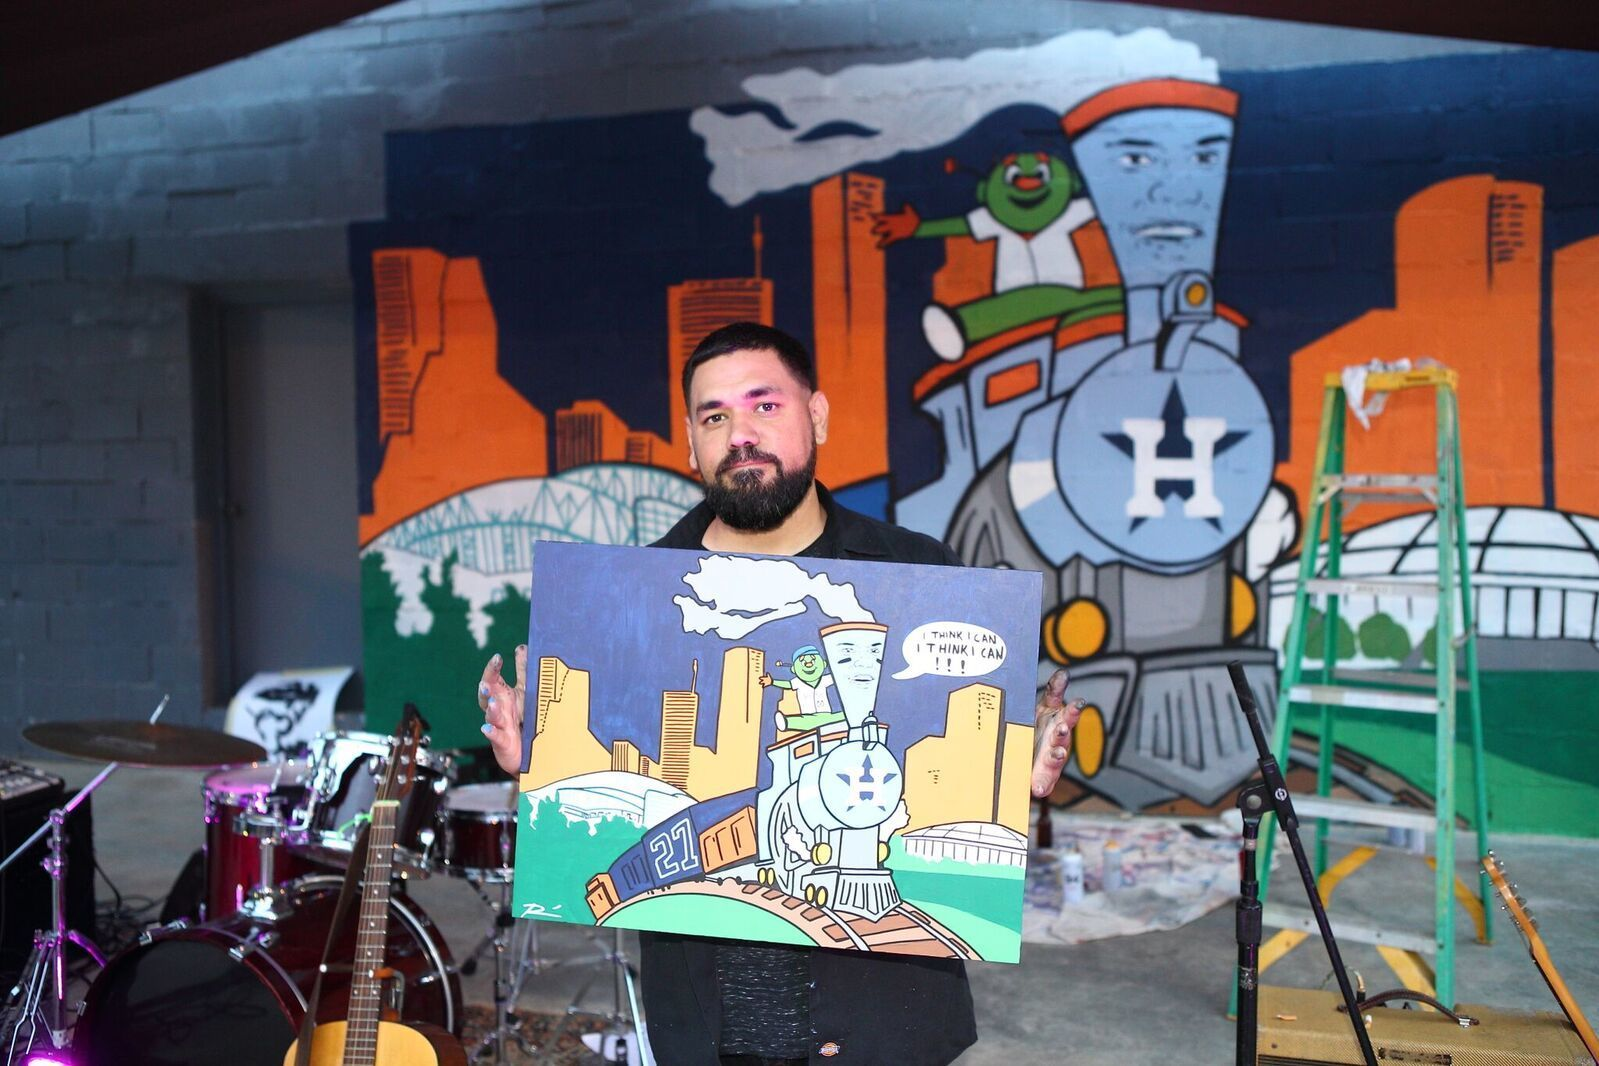 Donkeeboy alex roman jr with mural and original artwork preview a7hbi3